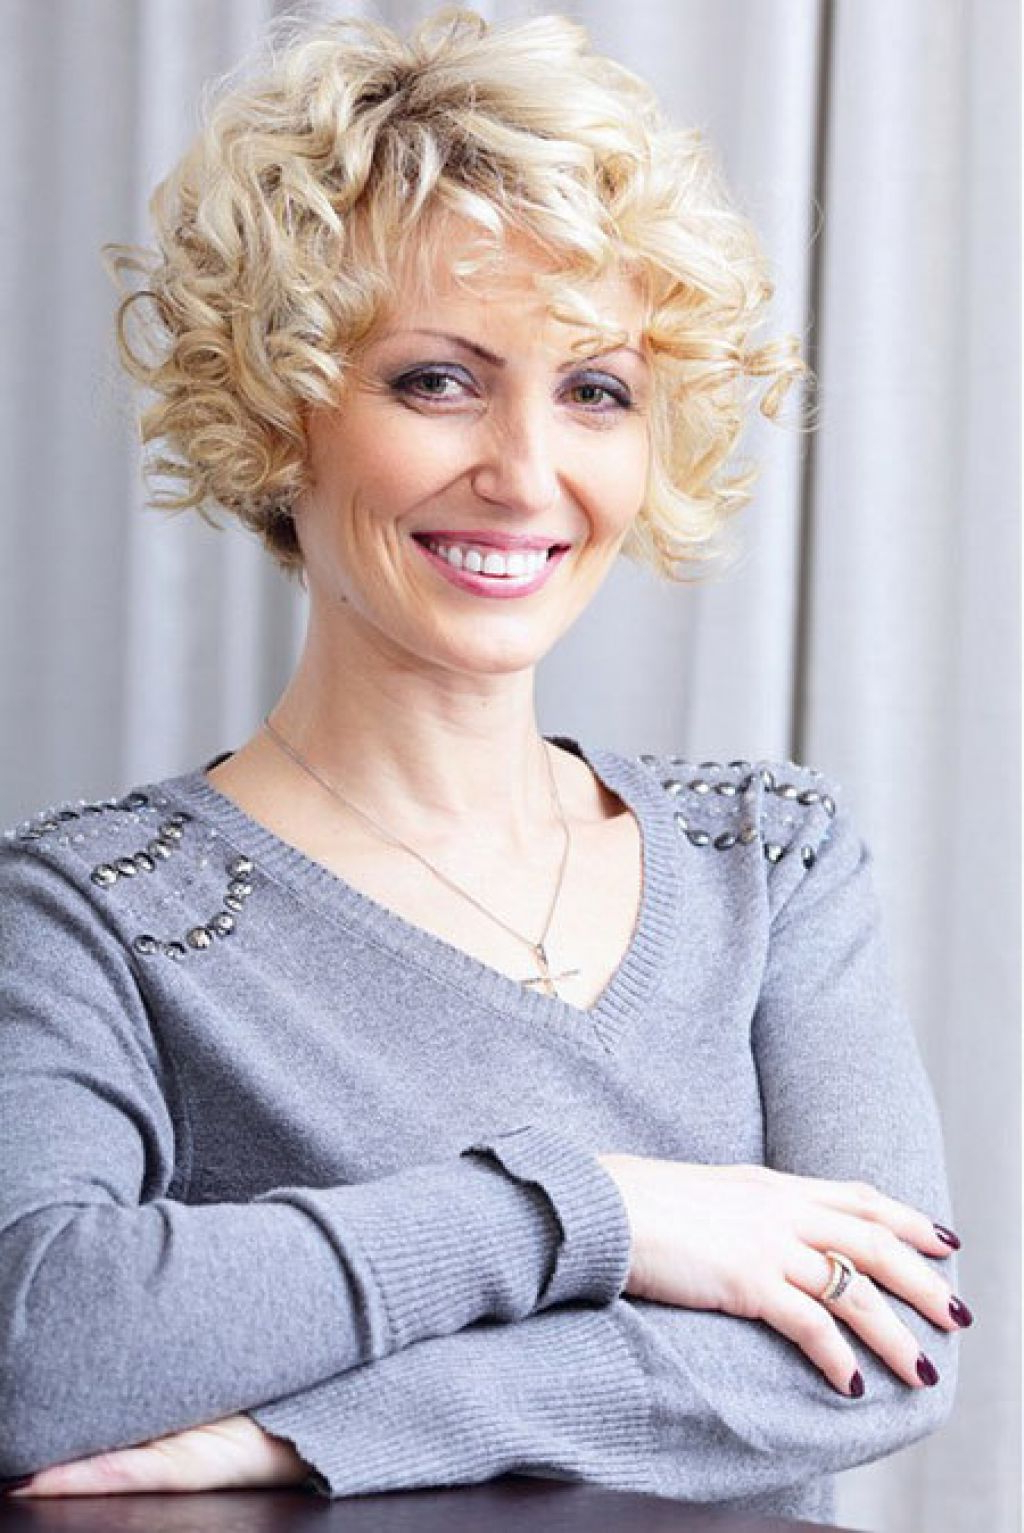 Short Haircuts For Women Over 40 With Curly Hair   Fashion Blog With Regard To Short Curly Hairstyles For Over (View 9 of 25)